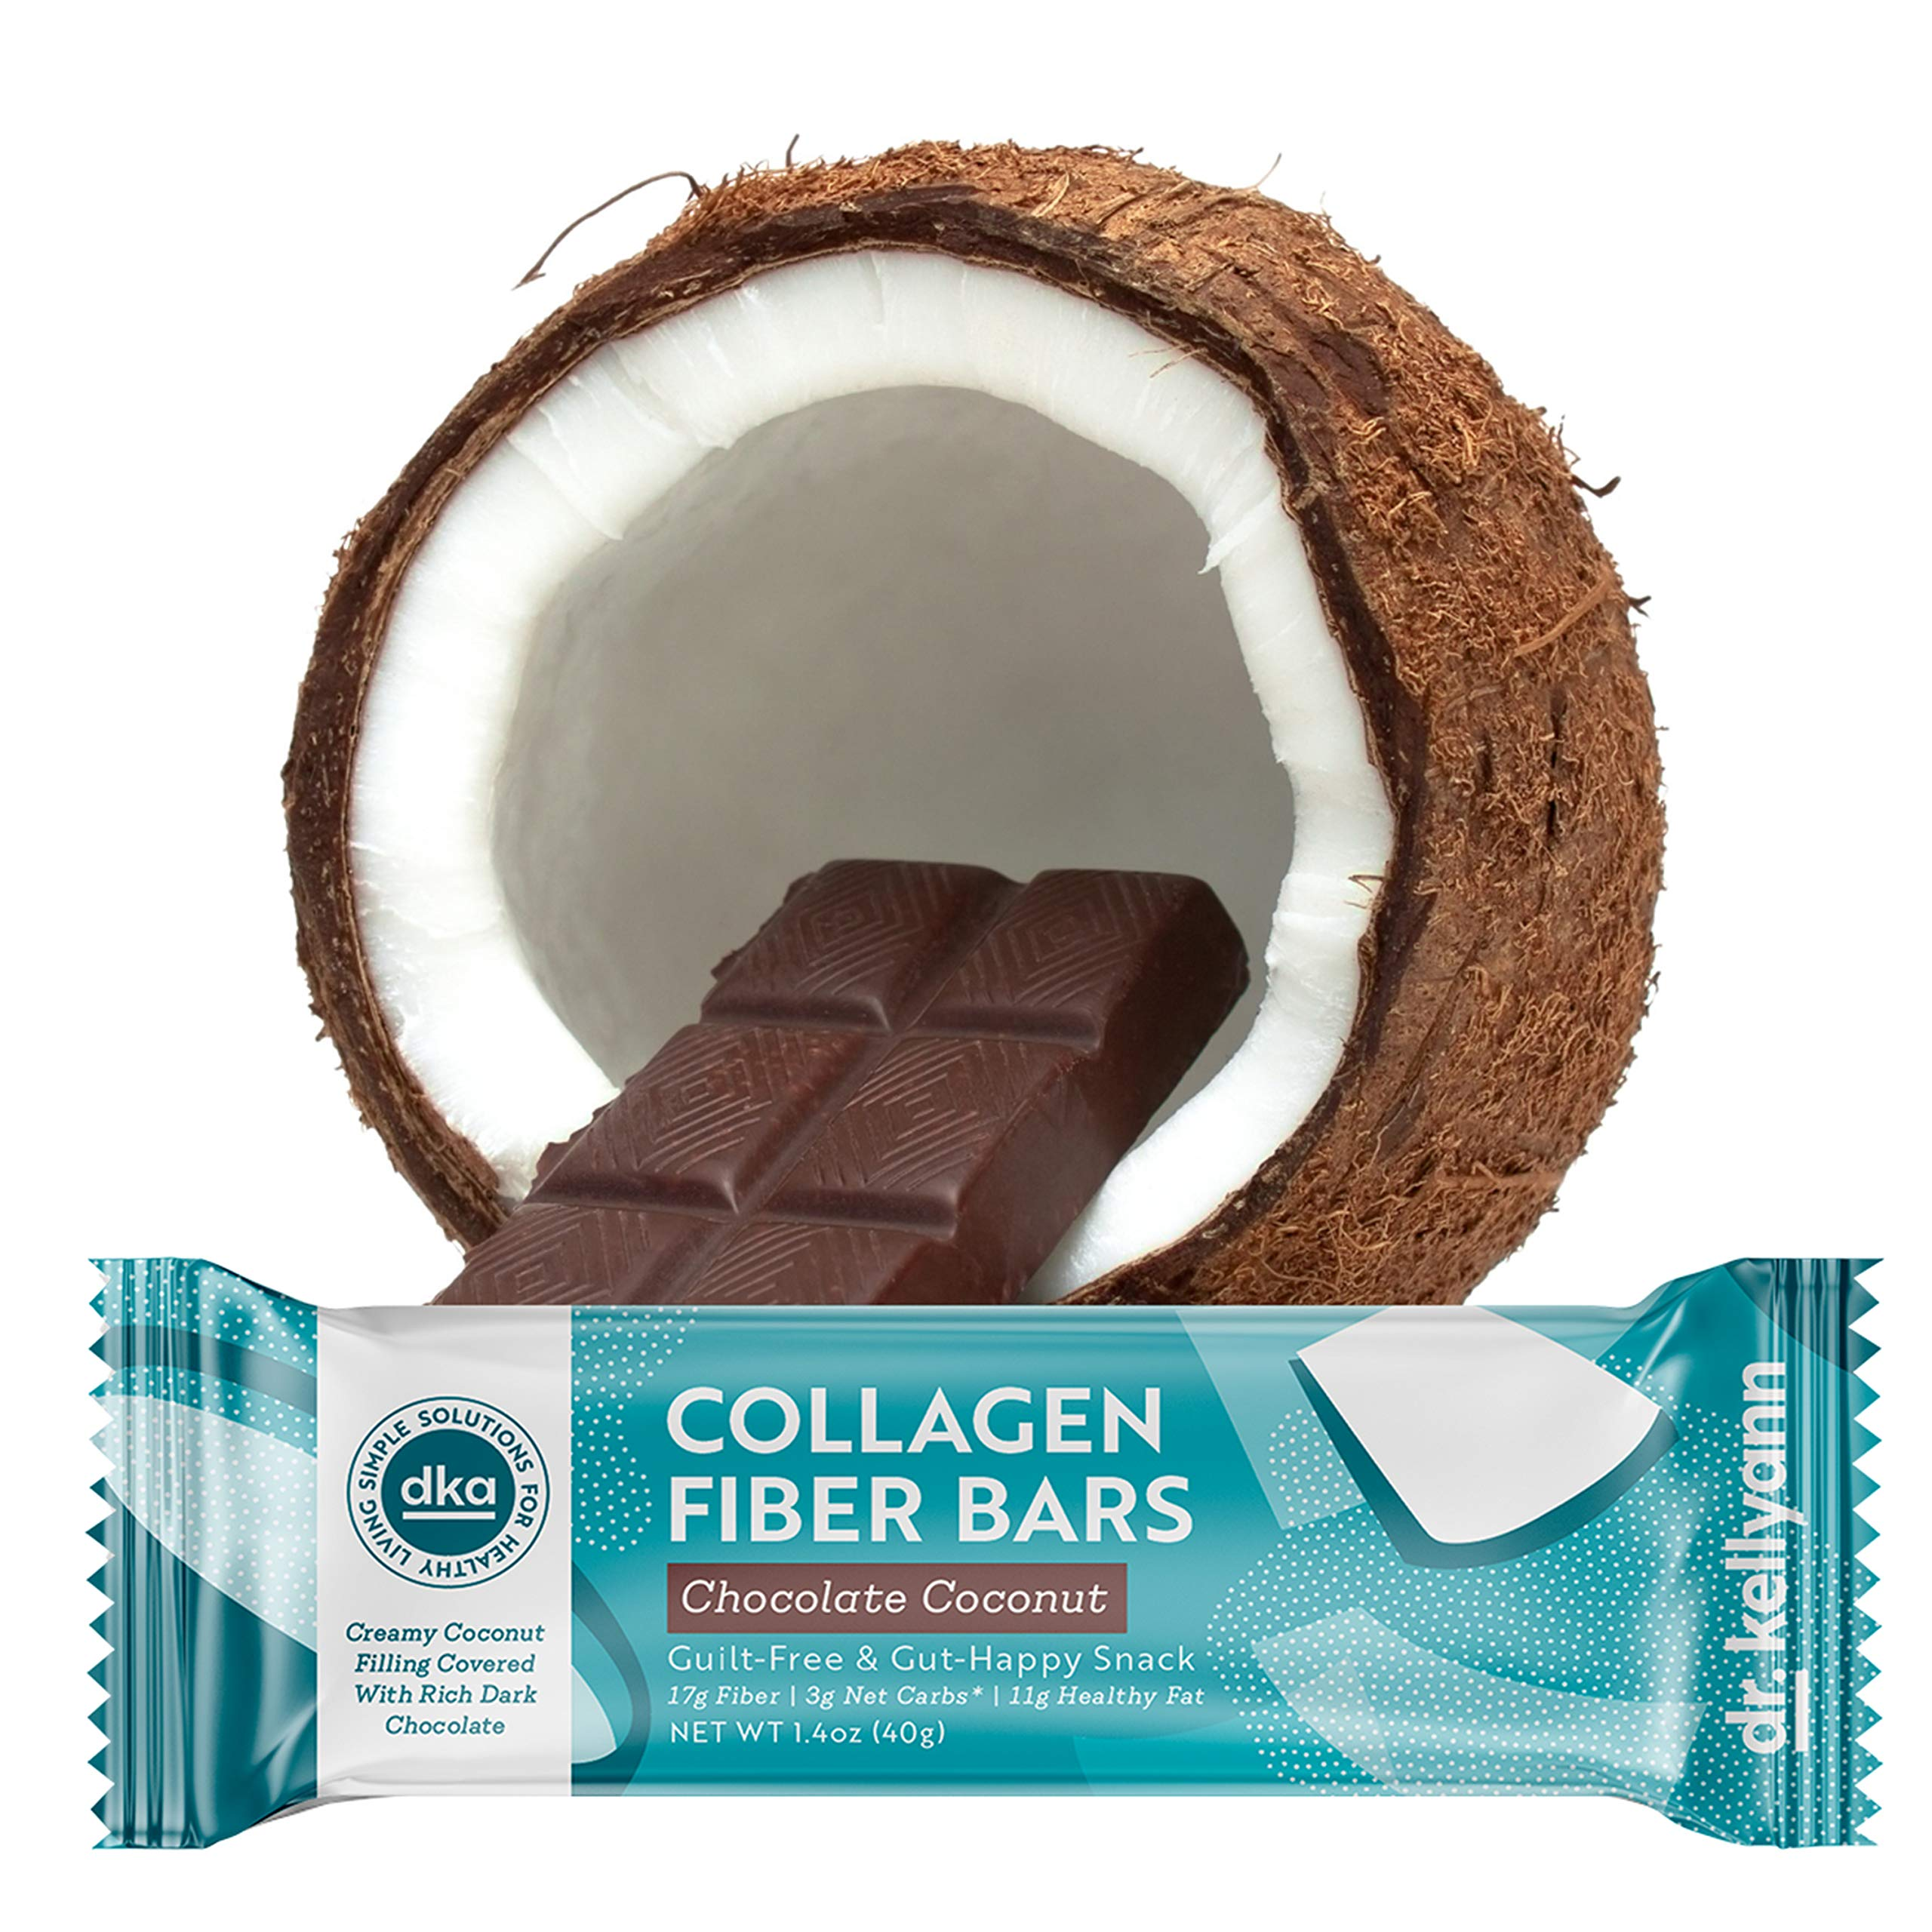 Keto Collagen Fiber Bar - High Fiber, Low Carbs - Dairy Free, Soy Free, Gluten Free, Non-GMO & No Added Sugar - Perfect Keto & Paleo Snack with Creamy Coconut Inside Dipped in Dark Chocolate (12 bars) by Dr. Kellyann